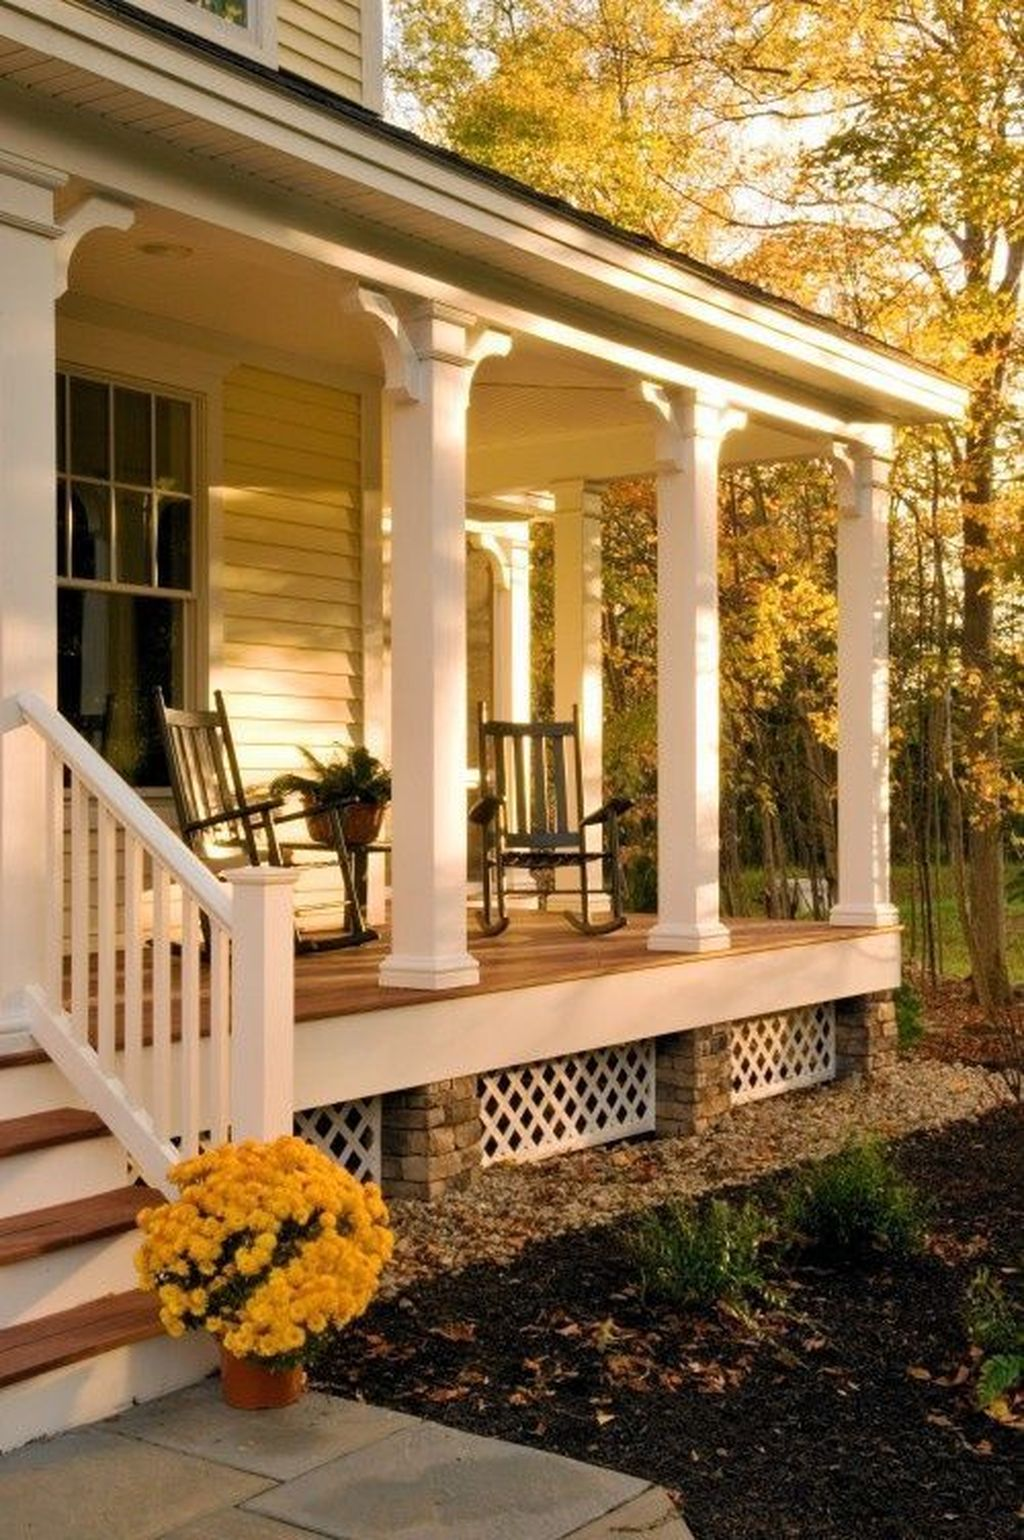 Inspiring Farmhouse Front Porch Decor Ideas 07